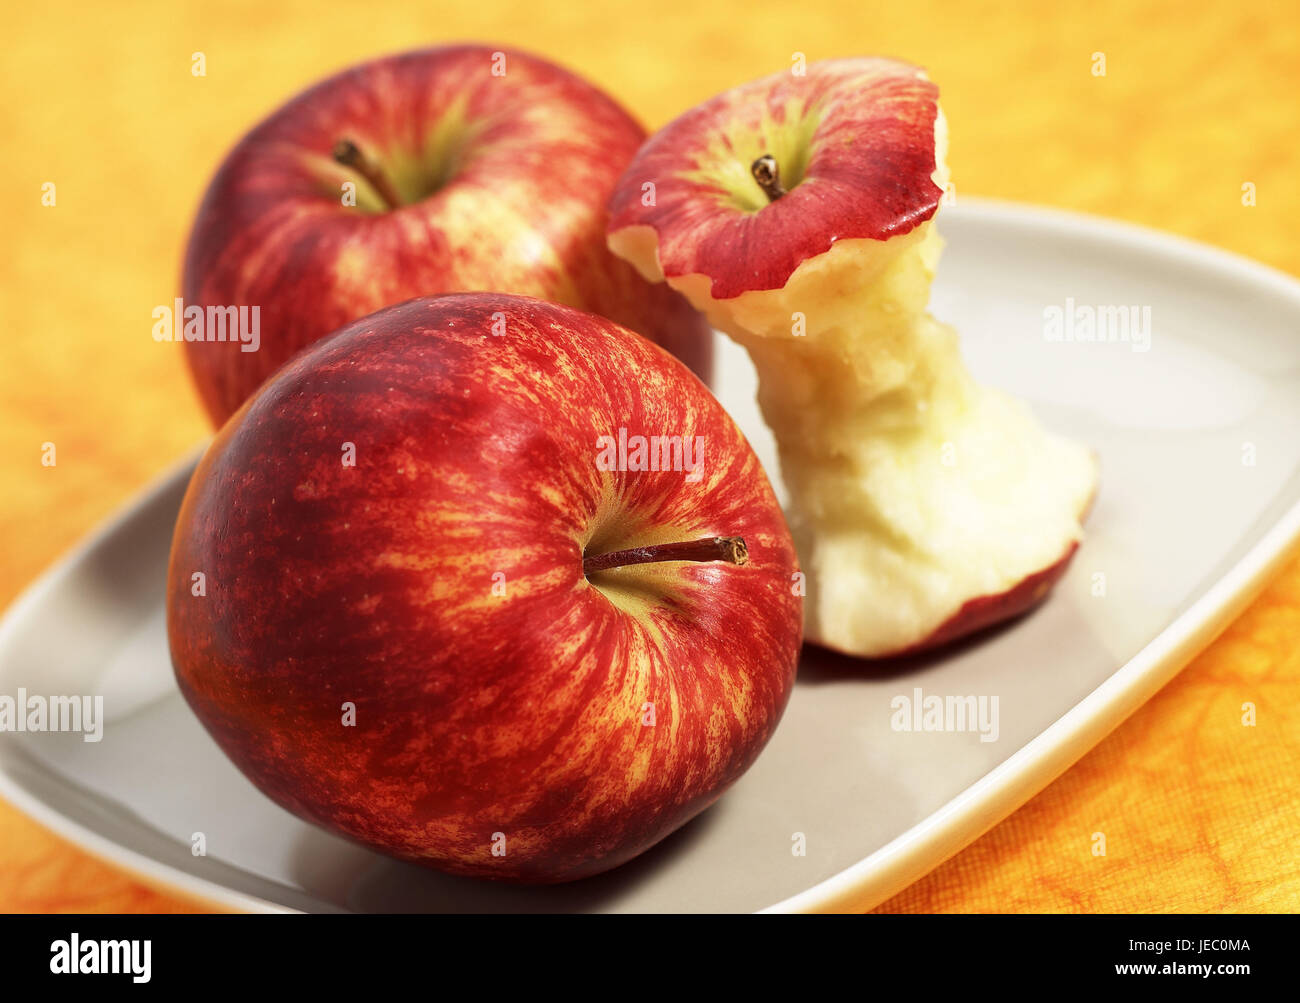 Apples, royal gala, Malus domestica, fruit, core, plate, - Stock Image